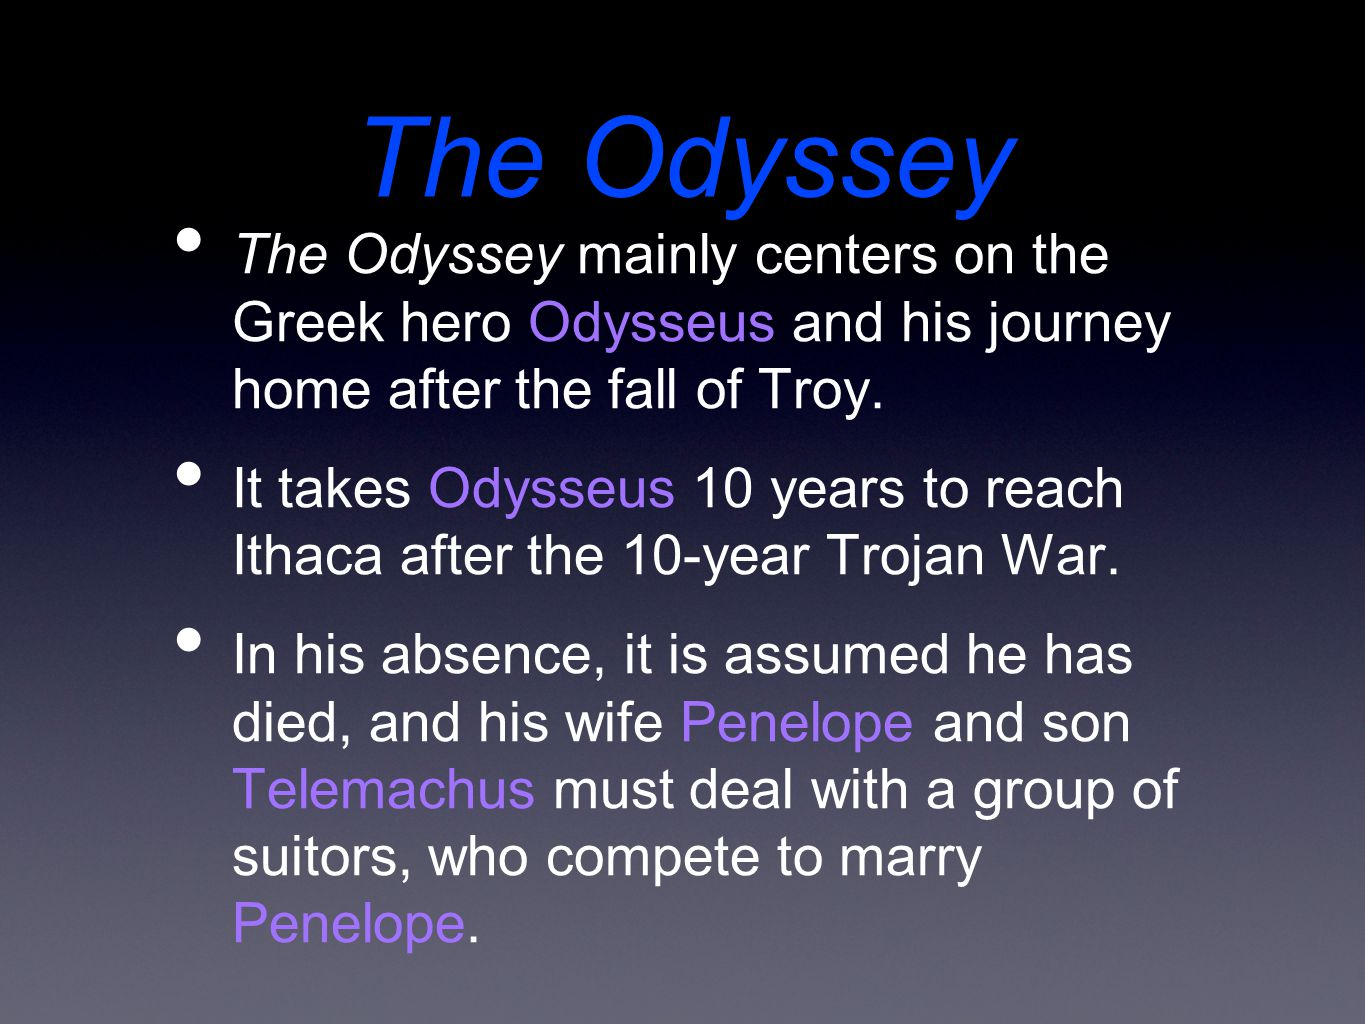 The Odyssey The Odyssey mainly centers on the Greek hero Odysseus and his journey home after the fall of Troy.